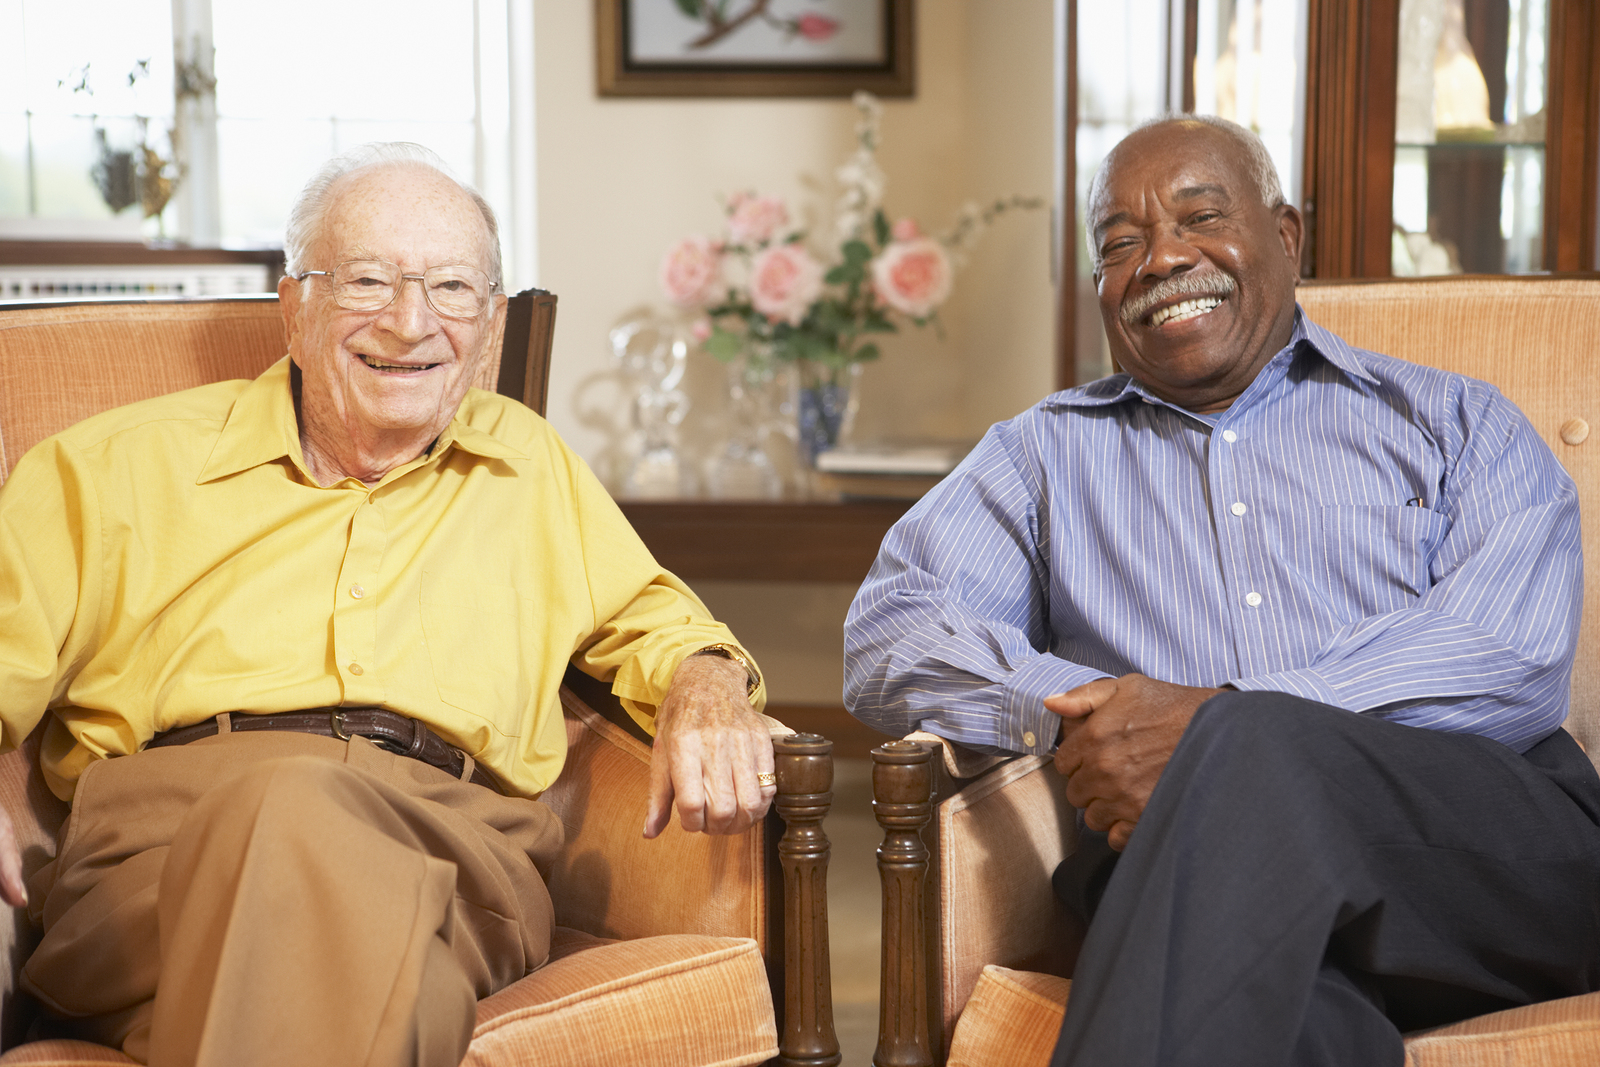 bigstock-Senior-men-relaxing-in-armchai-13894637.jpg